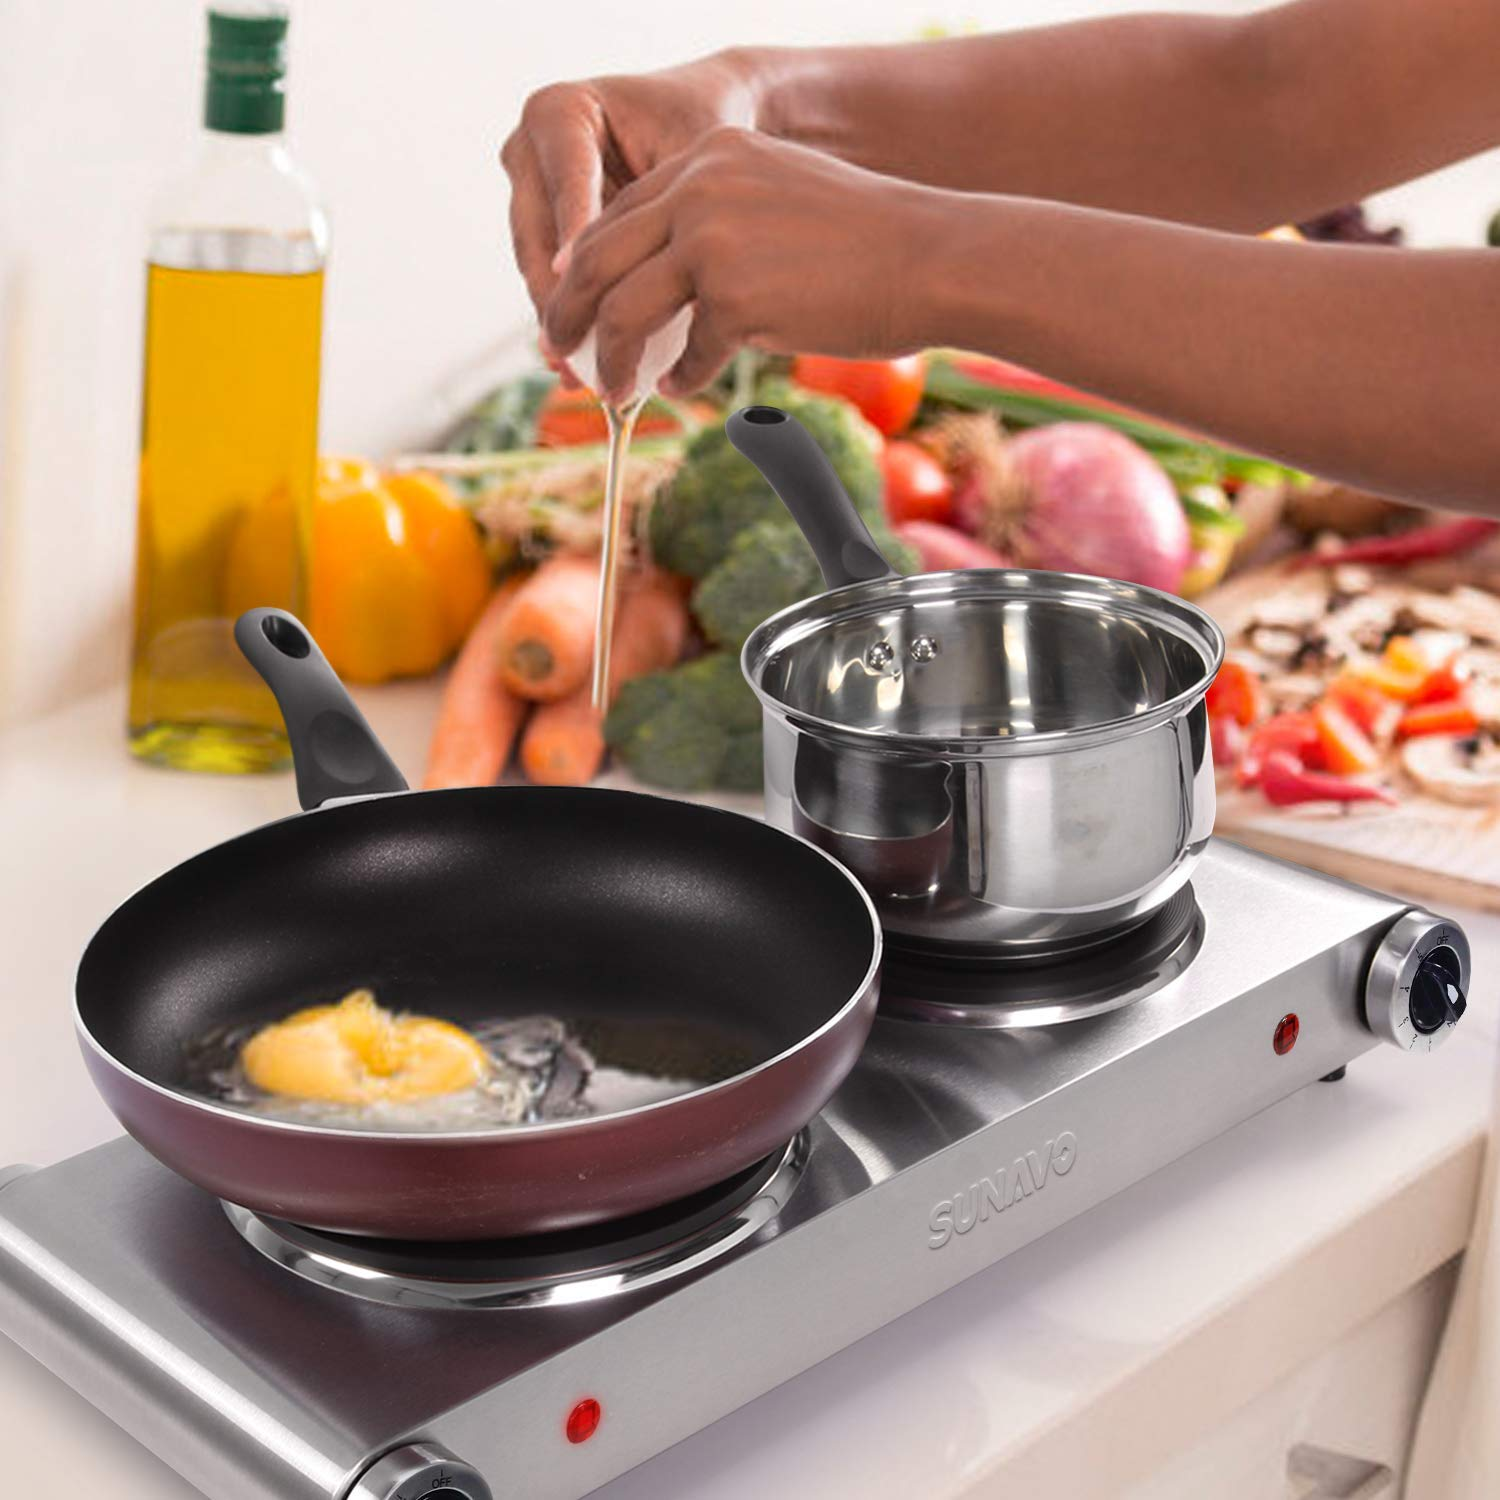 Hot plate cooktops for small spaces